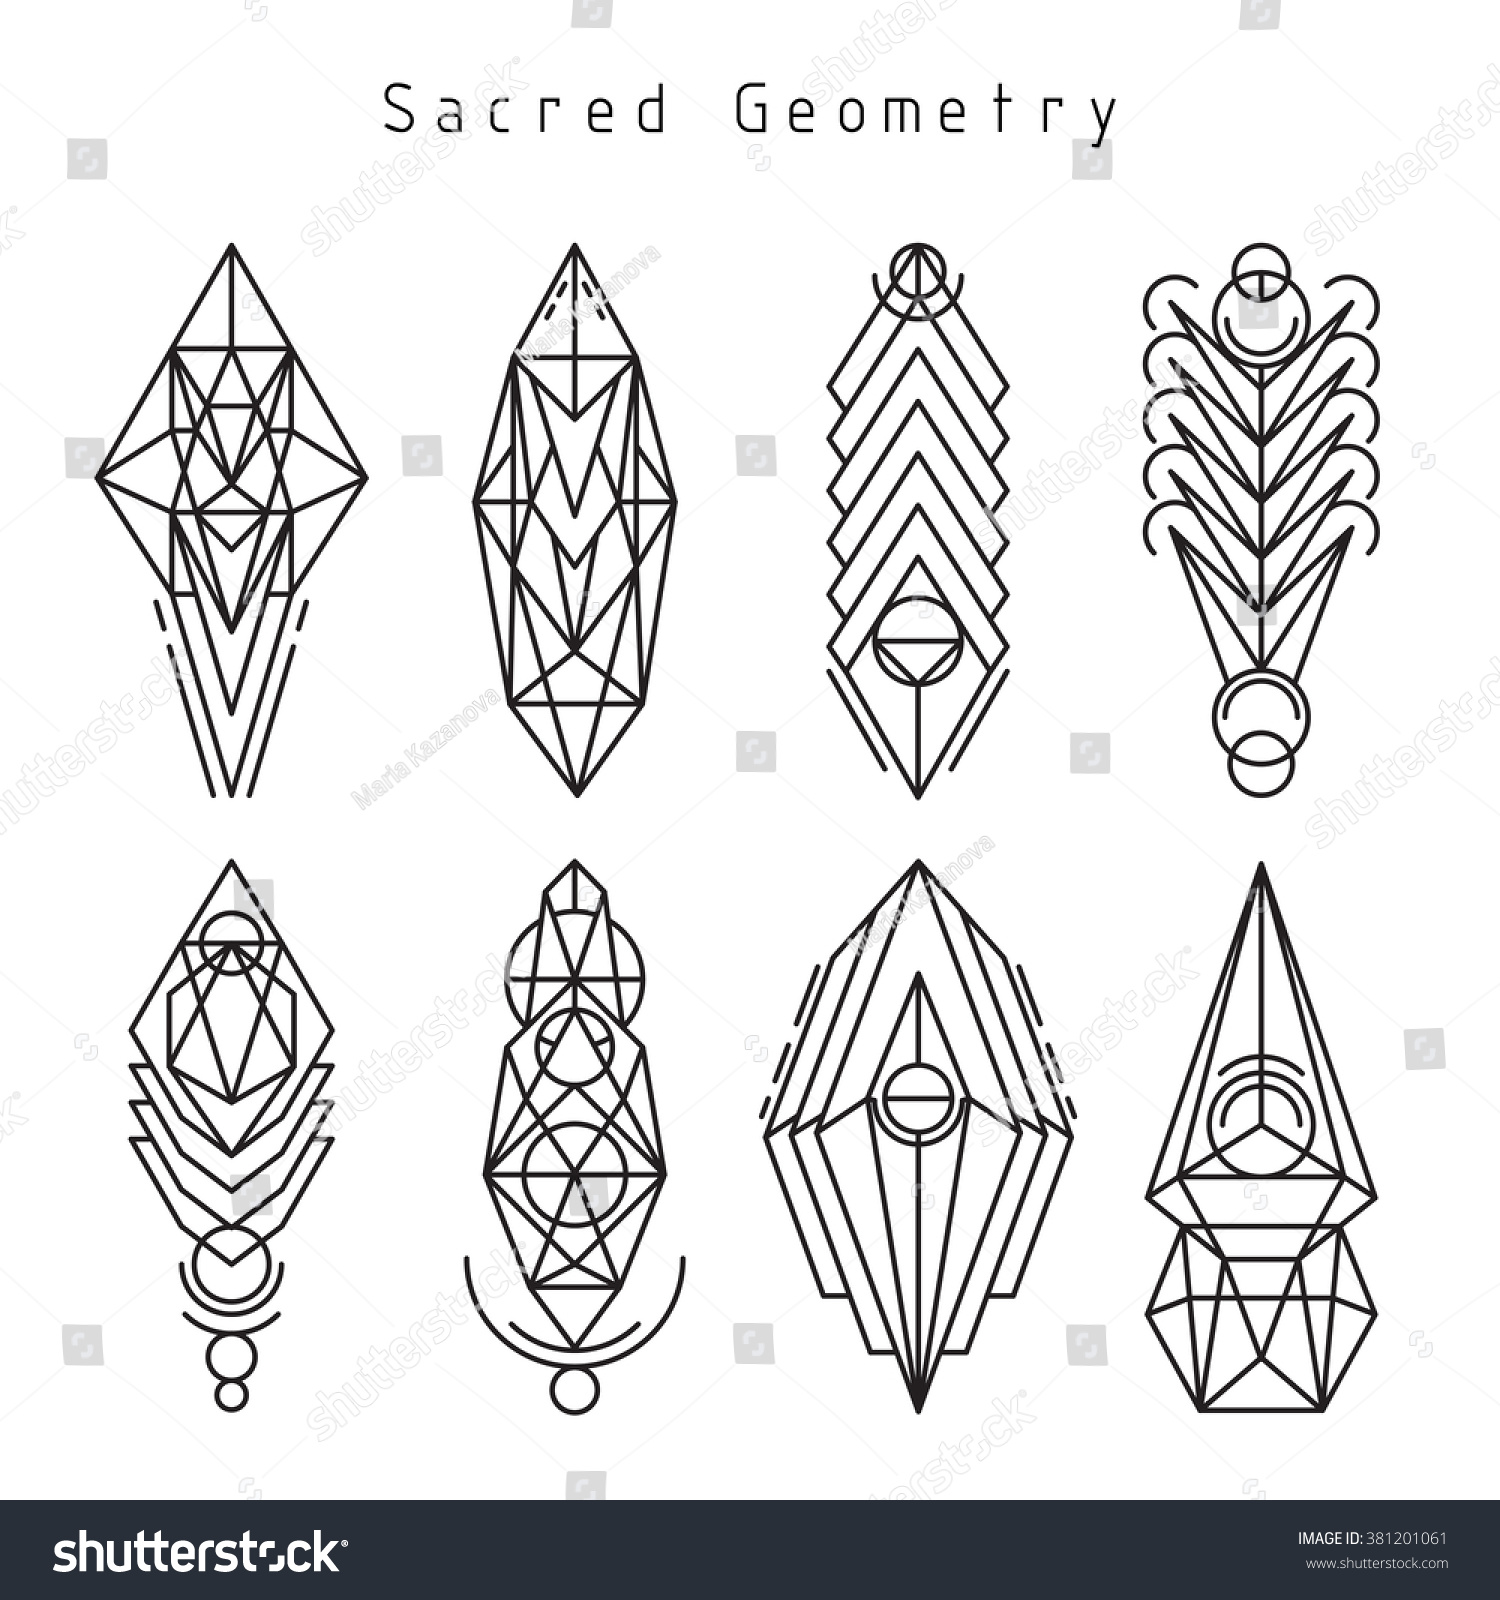 Vector Linear Sacred Geometry Emblem Set Stock Vektor